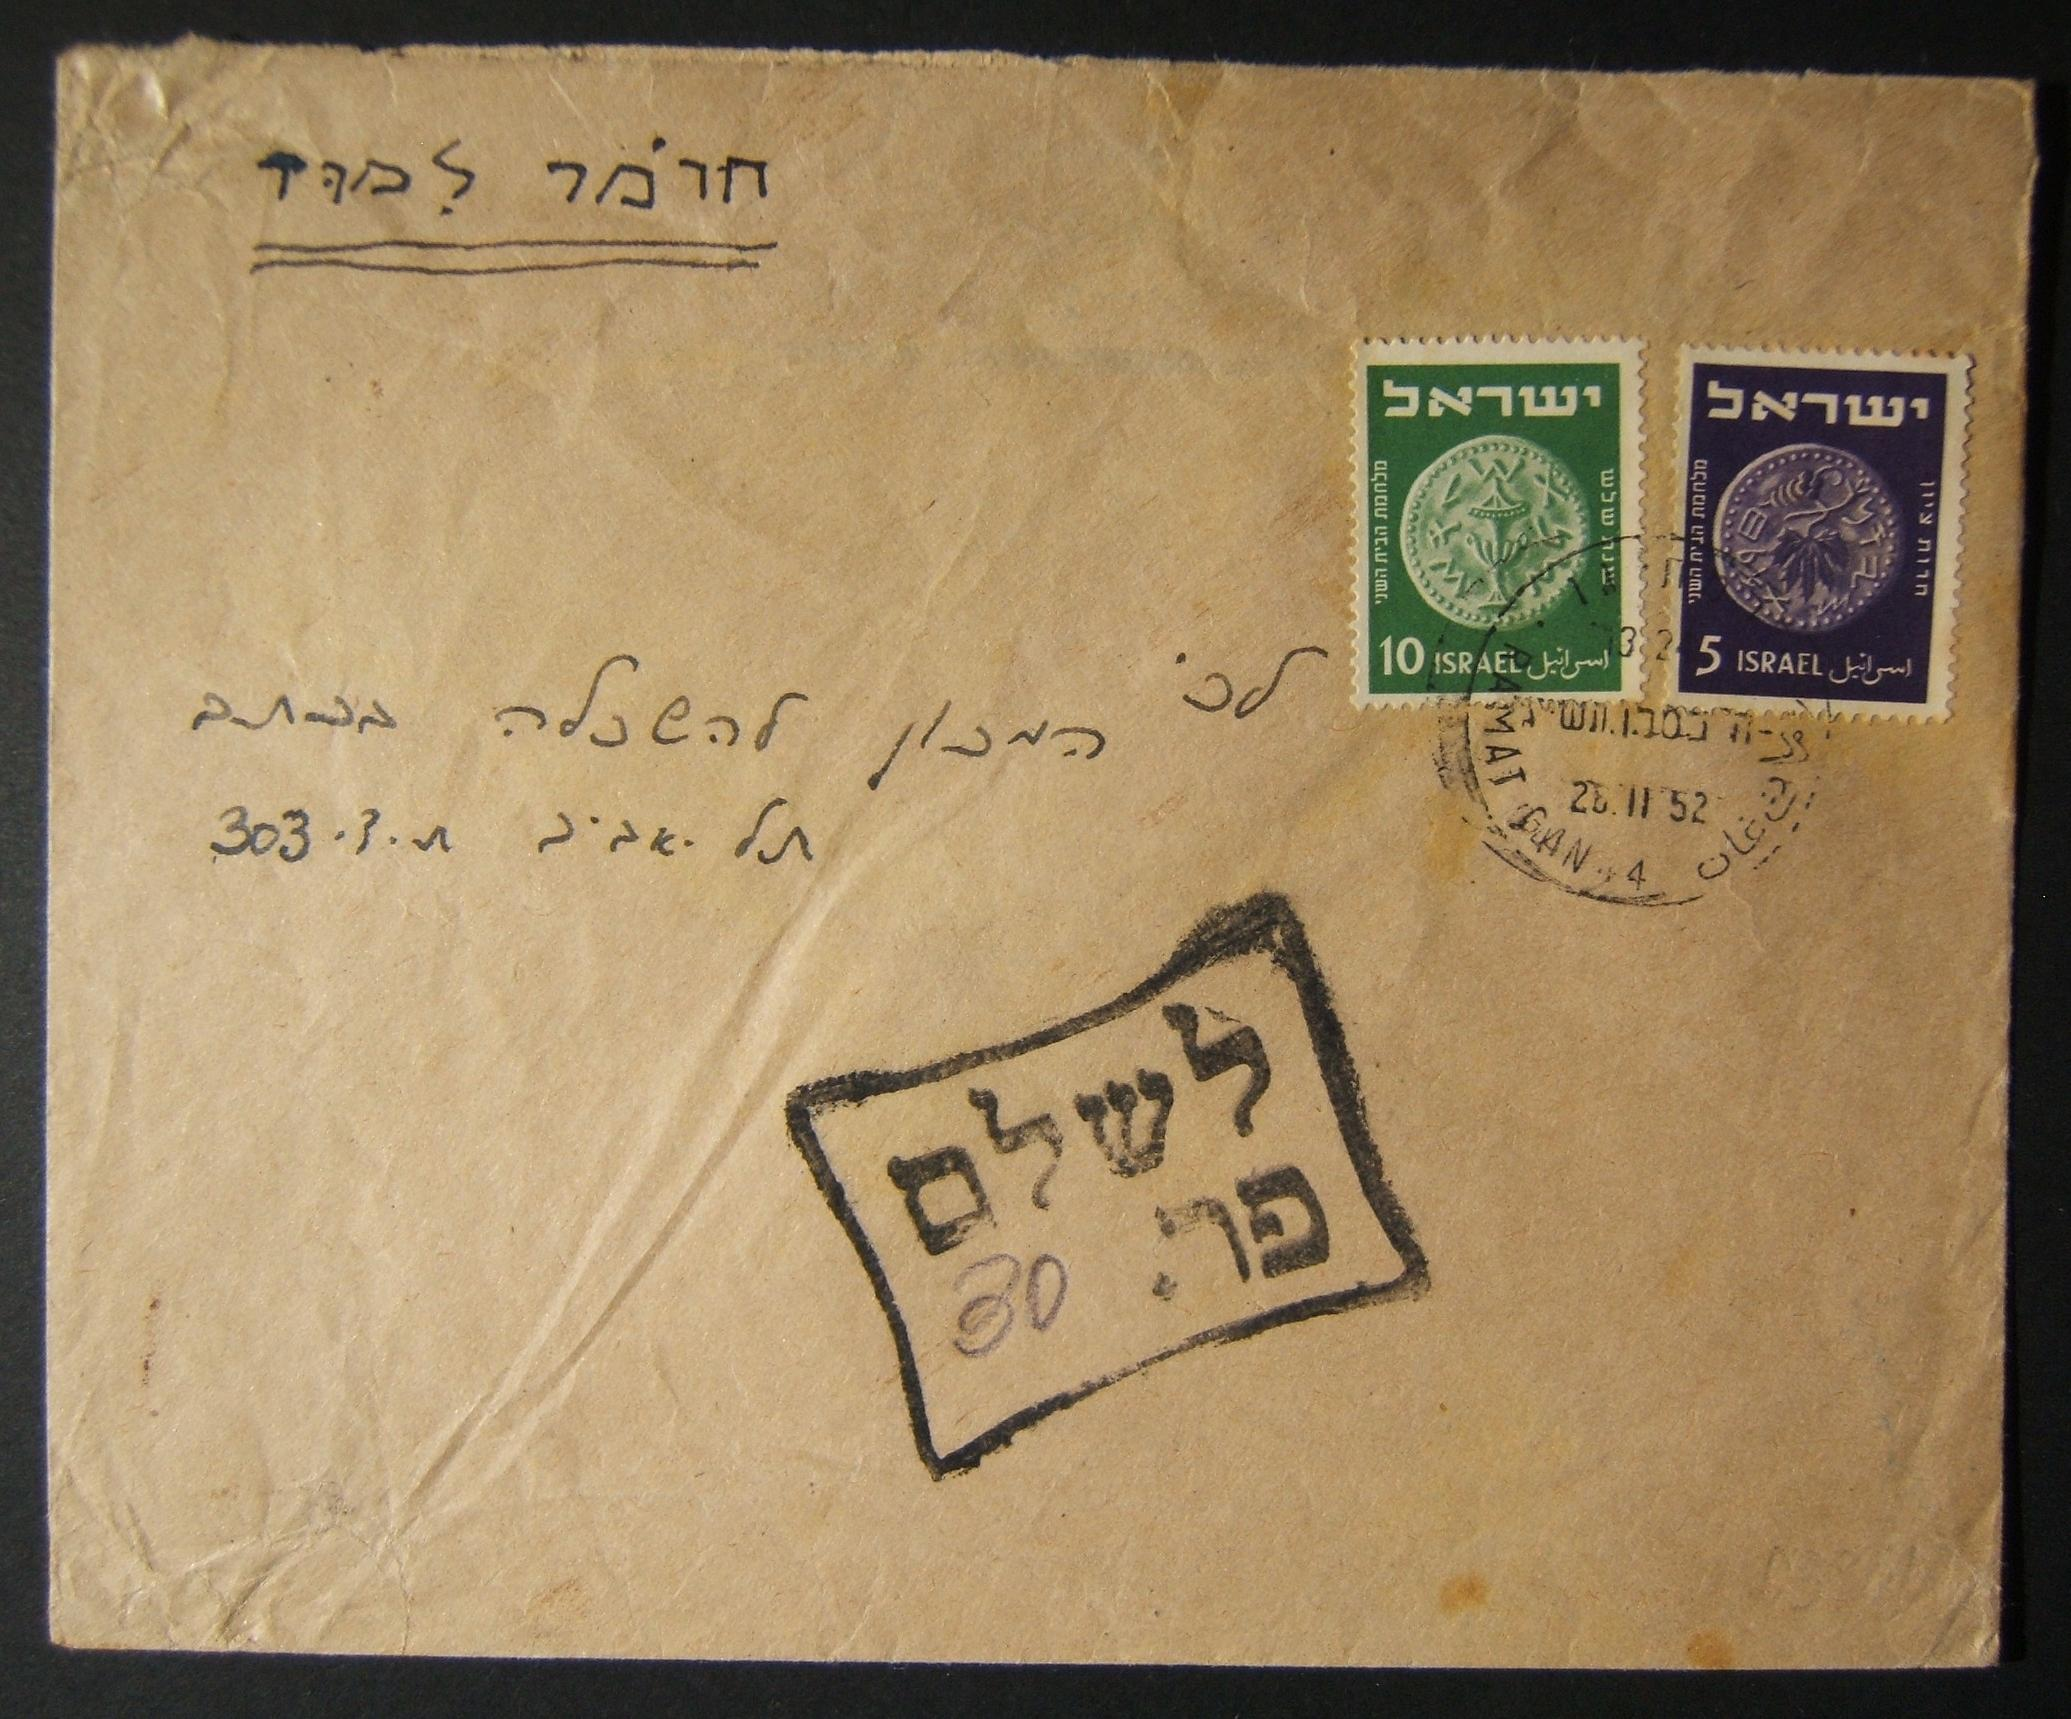 1952 domestic taxed mail: 25-11-1952 cover ex RAMAT GAN to educational institute in TEL AVIV attempted to be sent at printed matter rate using manuscript notation